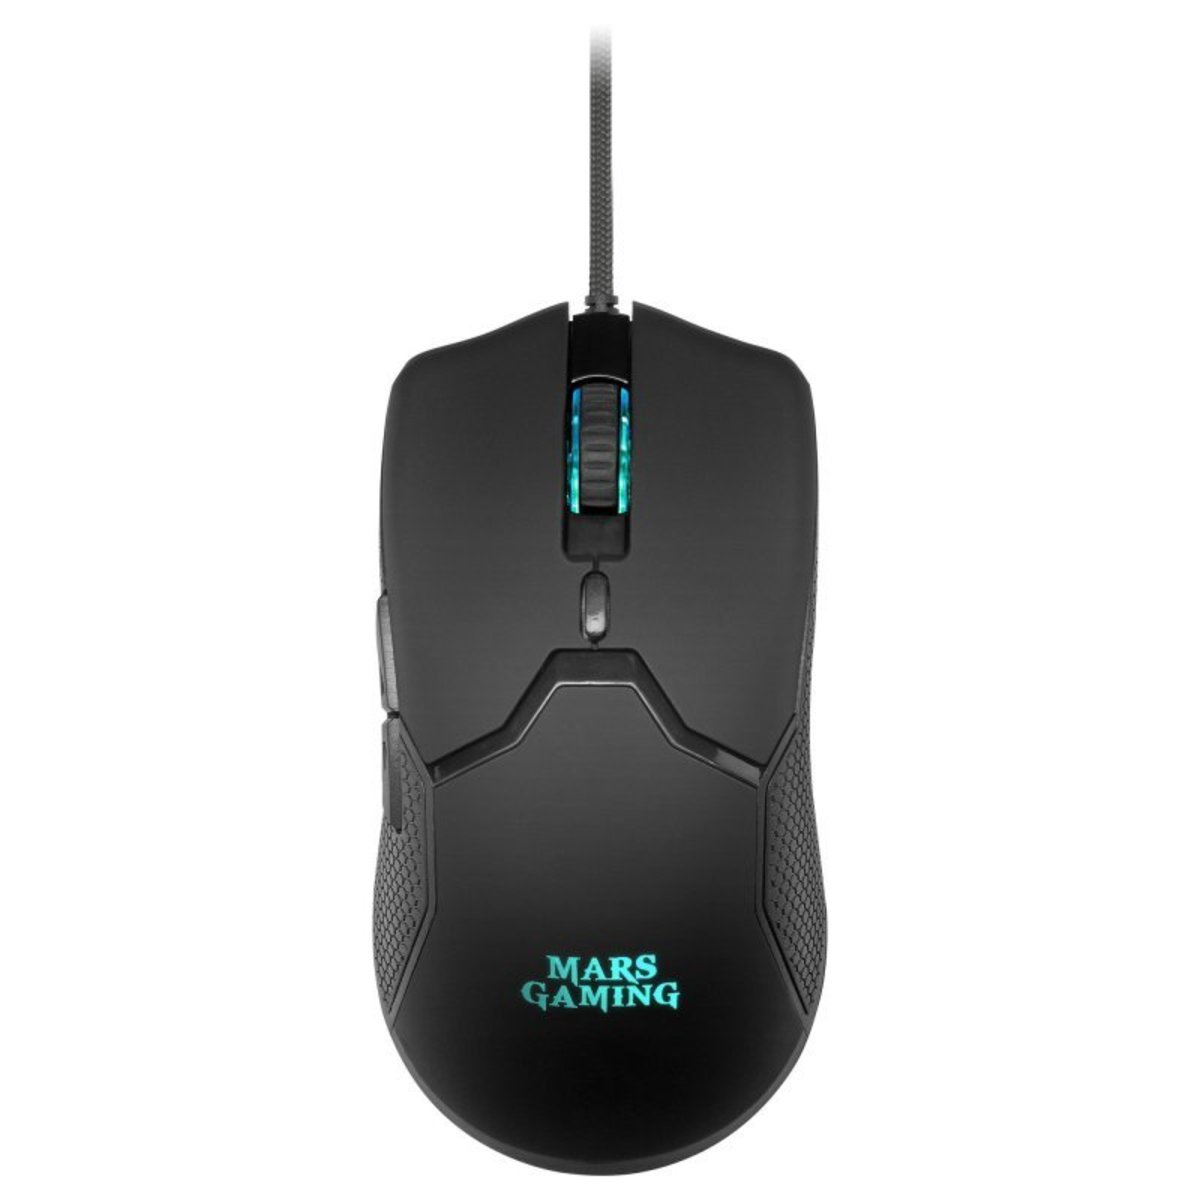 PACK TECLADO MOUSE ALFOMBRILLA Y HEADSET MARS GAMING MCPEX RGB SERIE PROFESIONAL